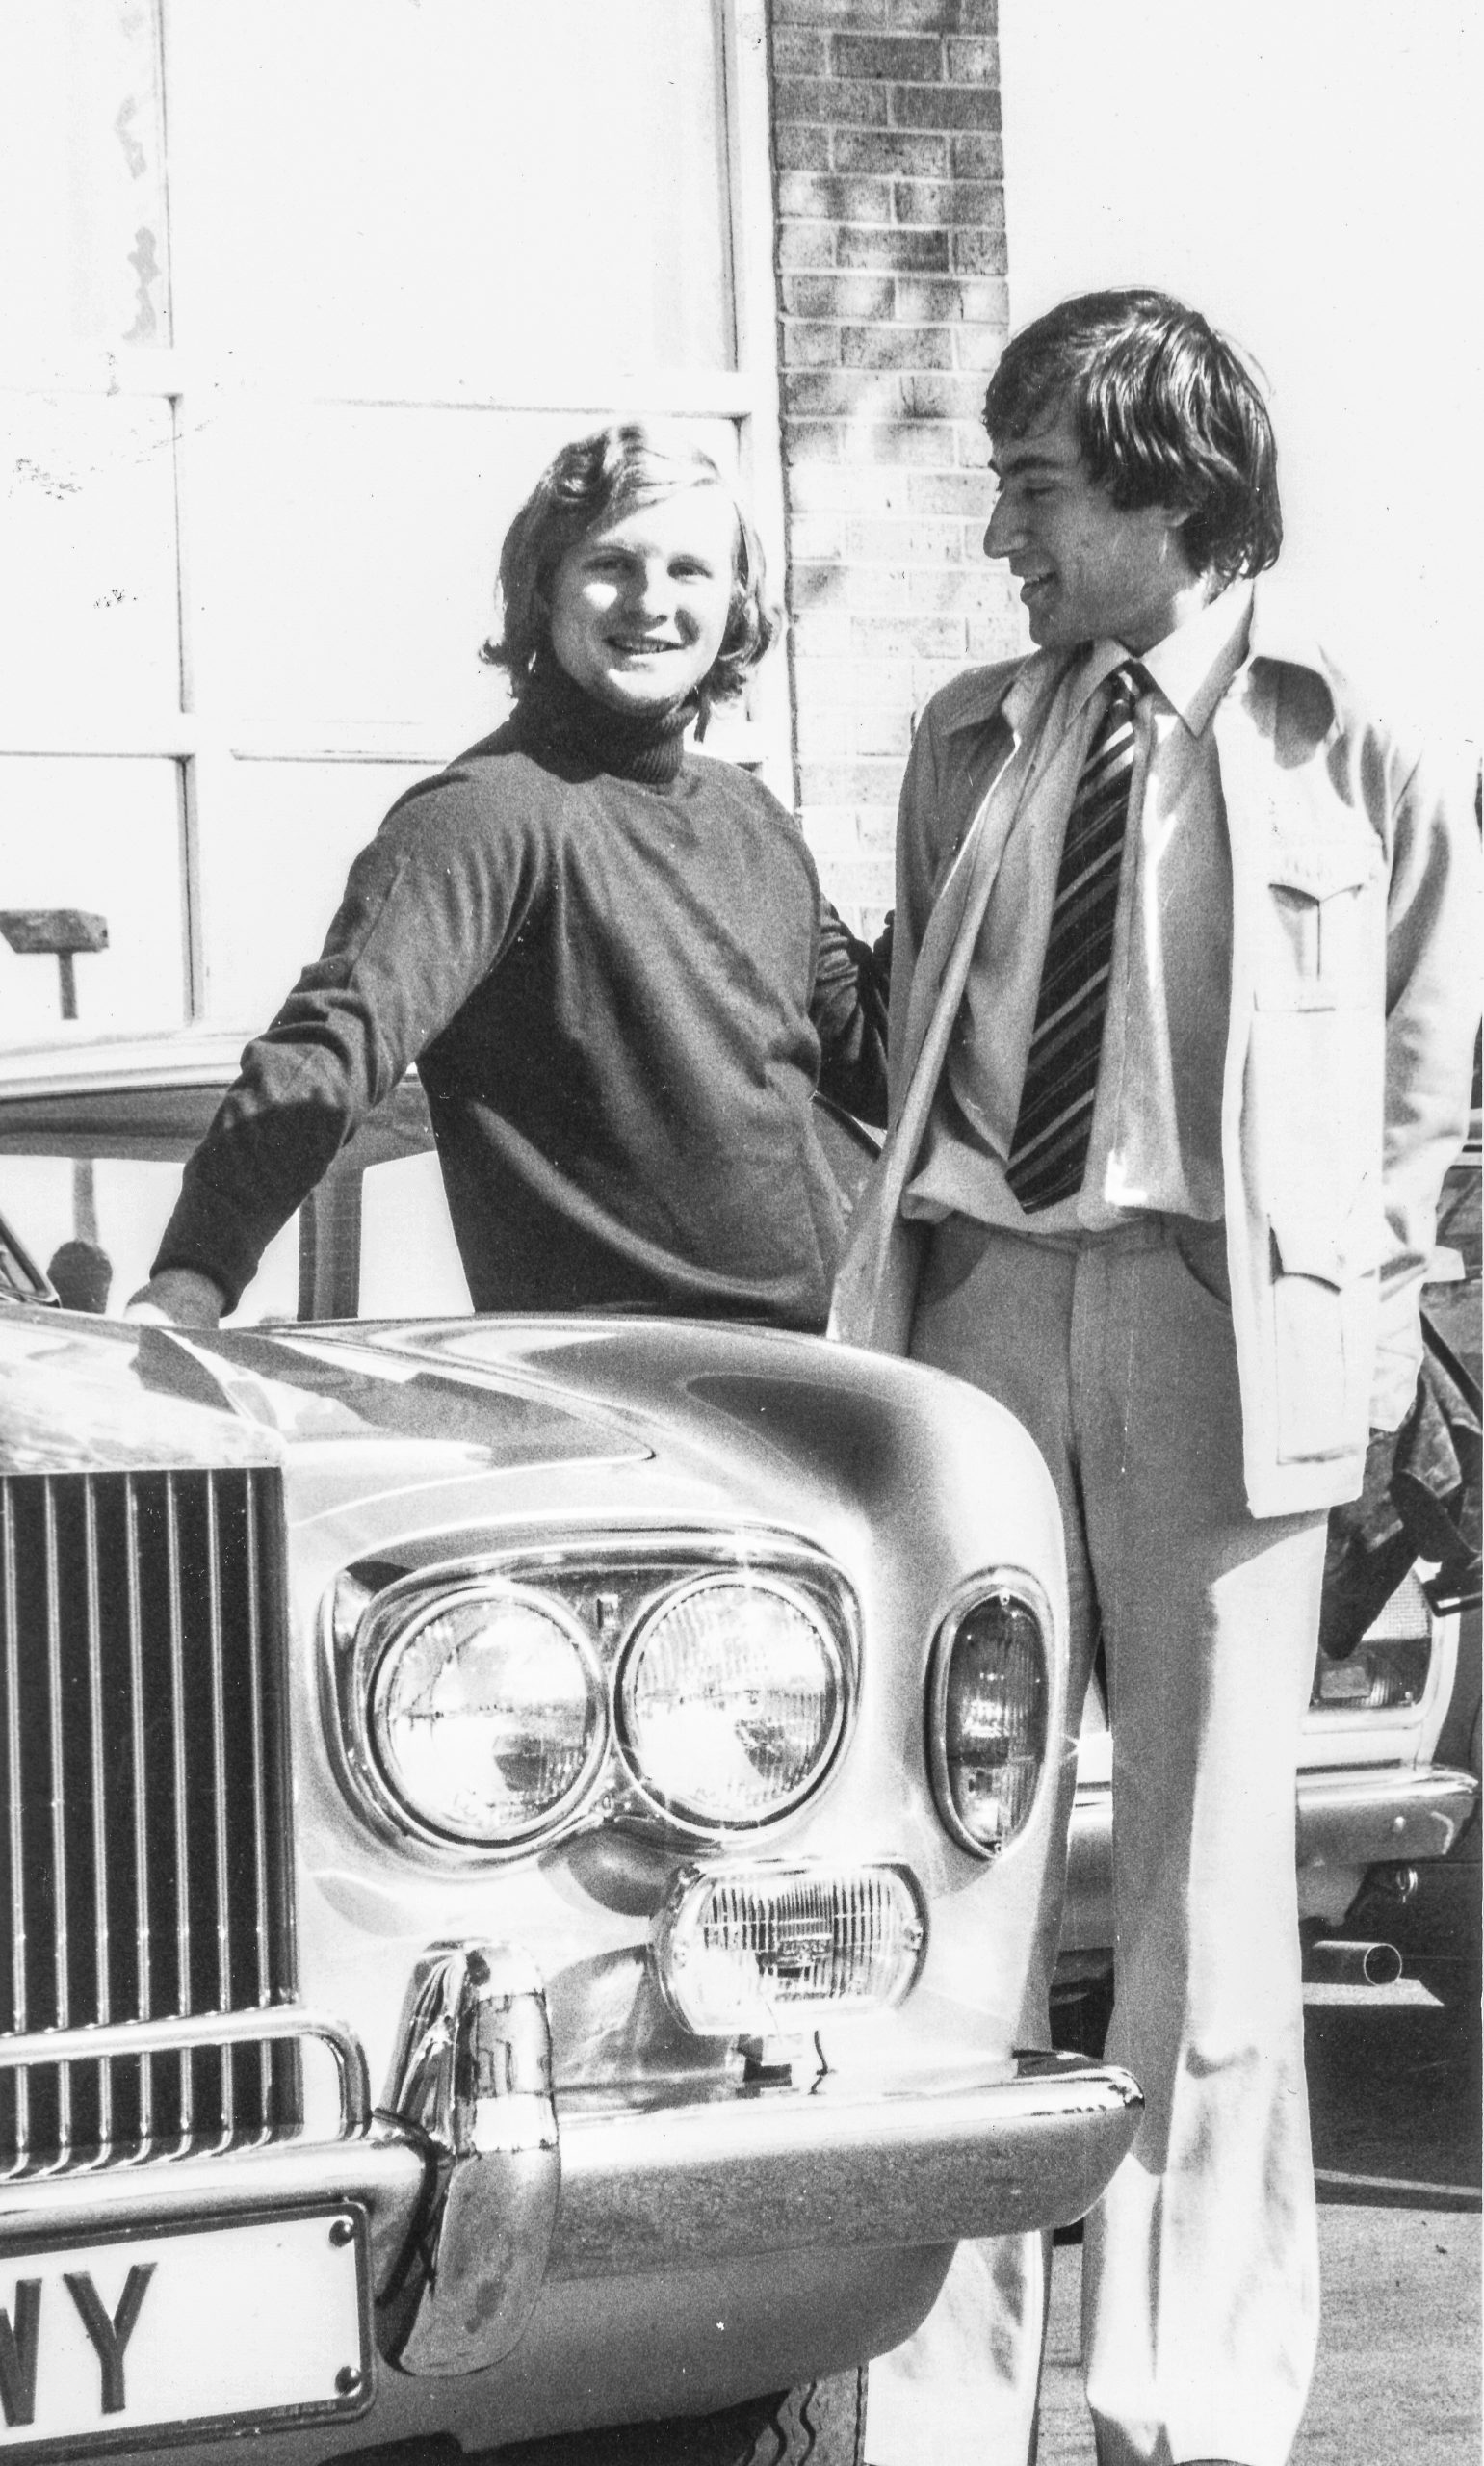 Tony Miles & Bill Hartston admire a Rolls-Royce